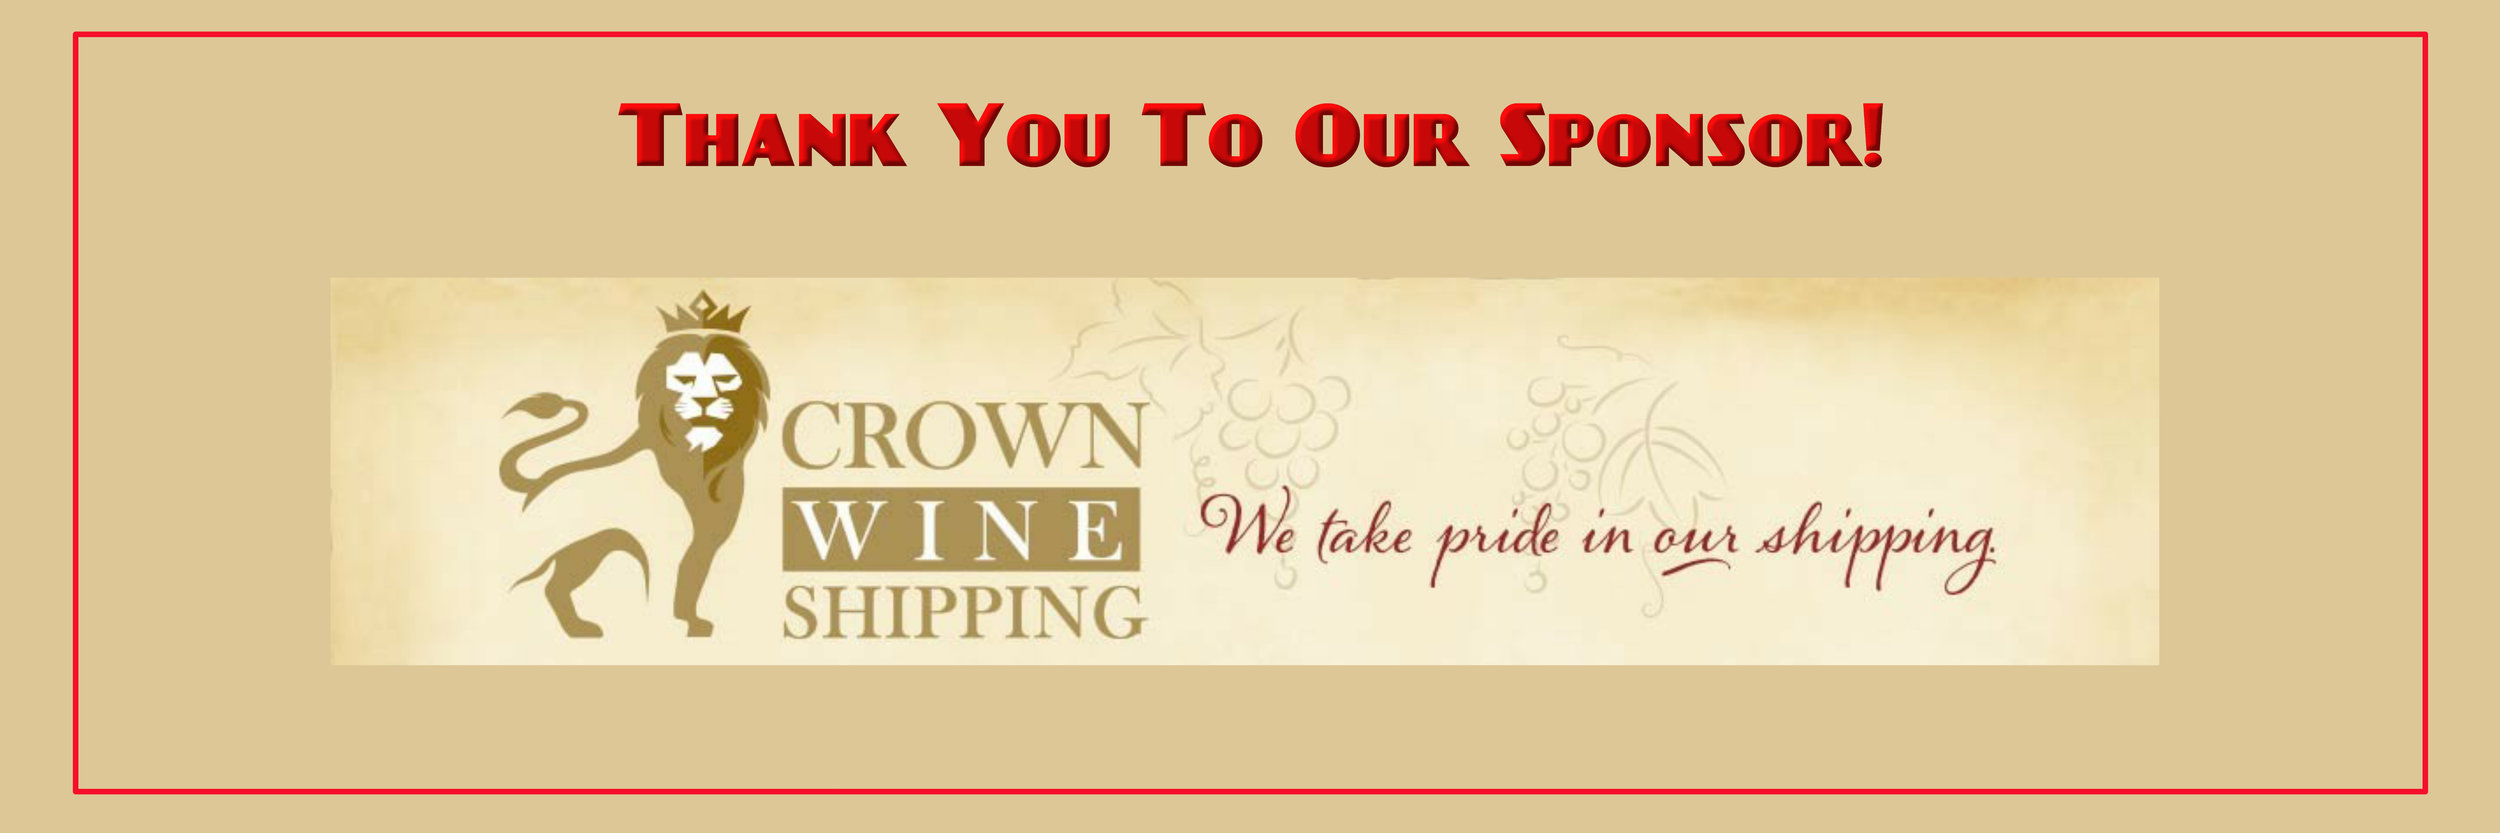 Banner - Crown Wine Shipping.jpg